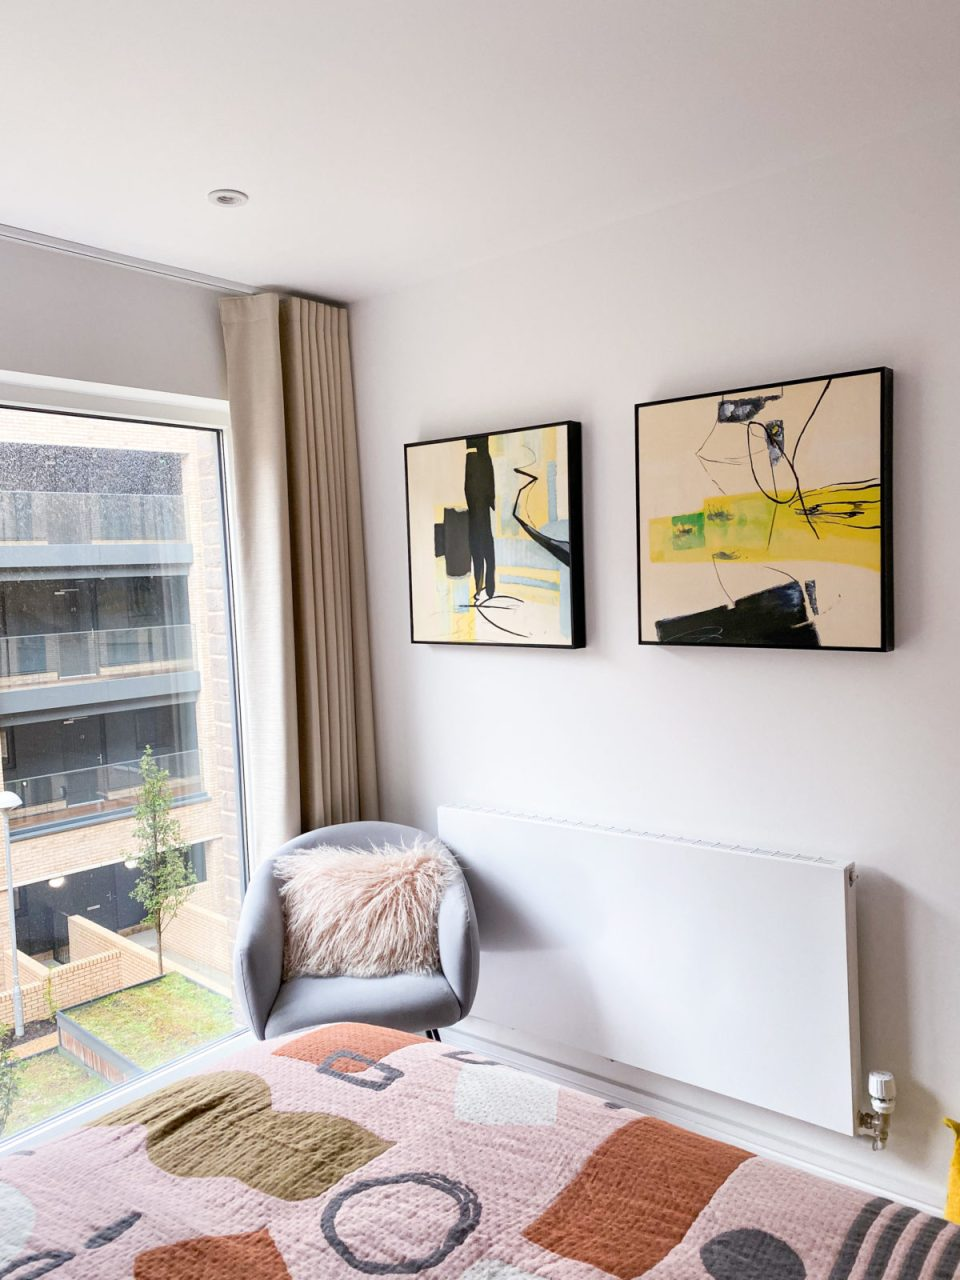 guest bedroom with yellow abstract artwork on the walls